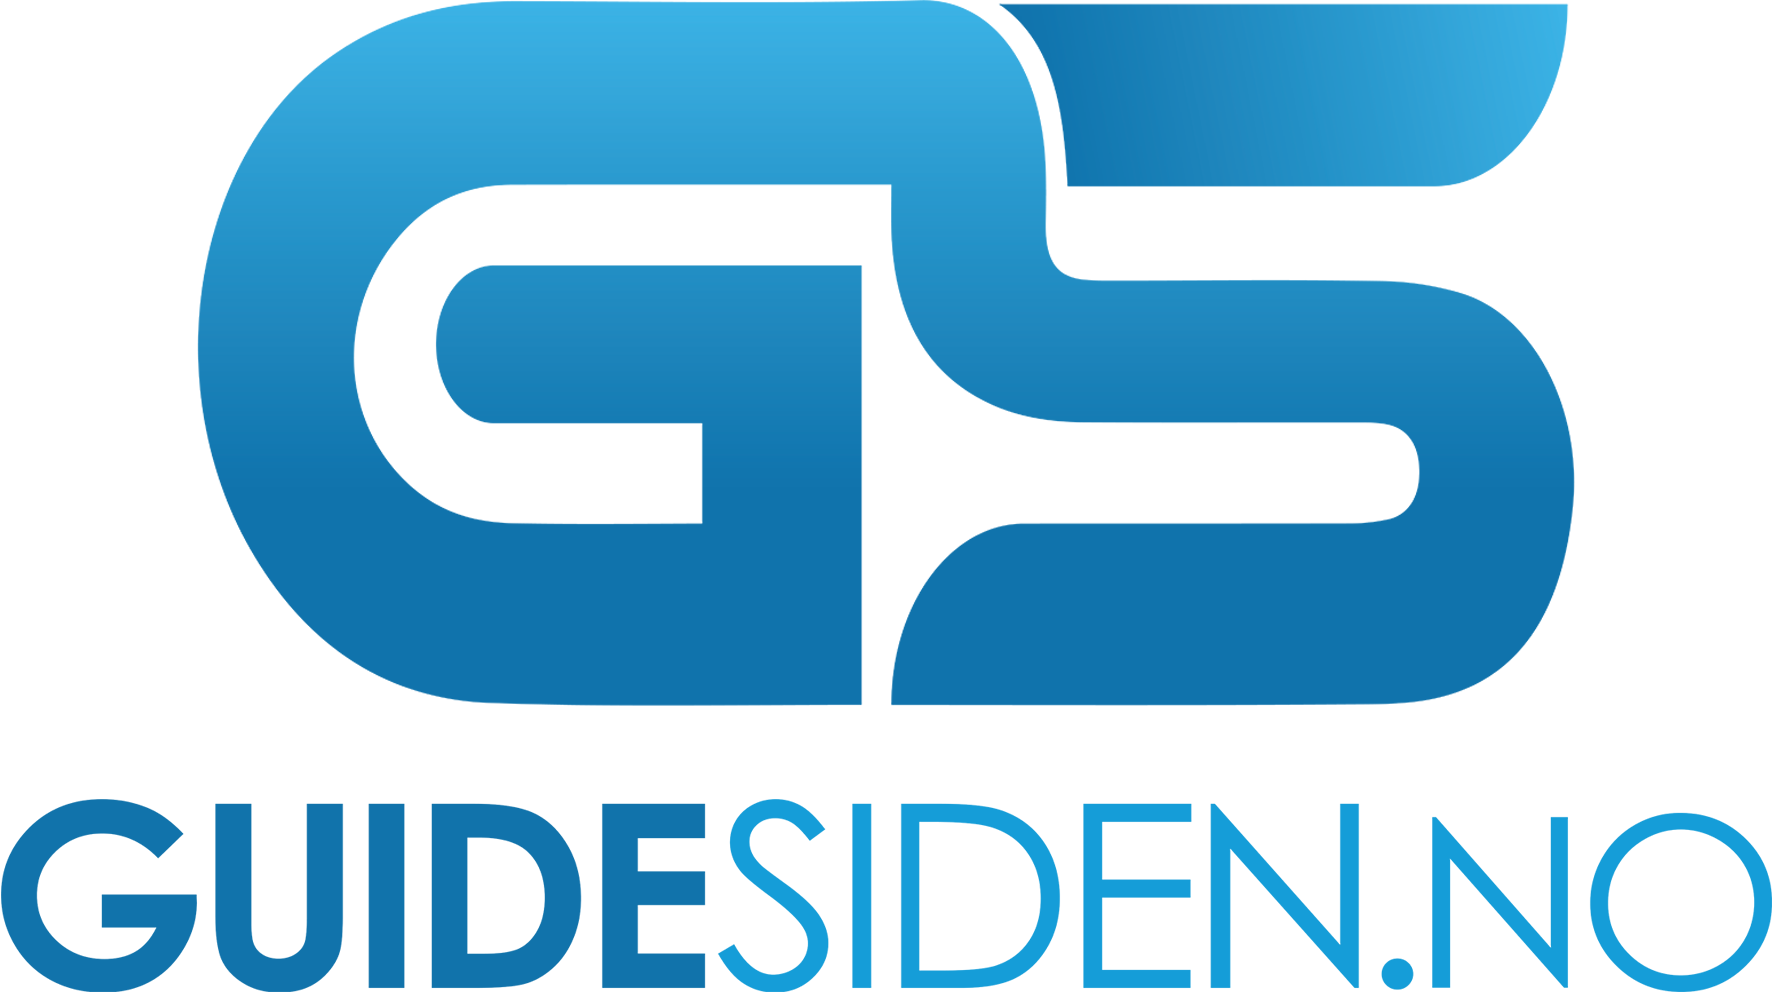 Guidesiden logo footer